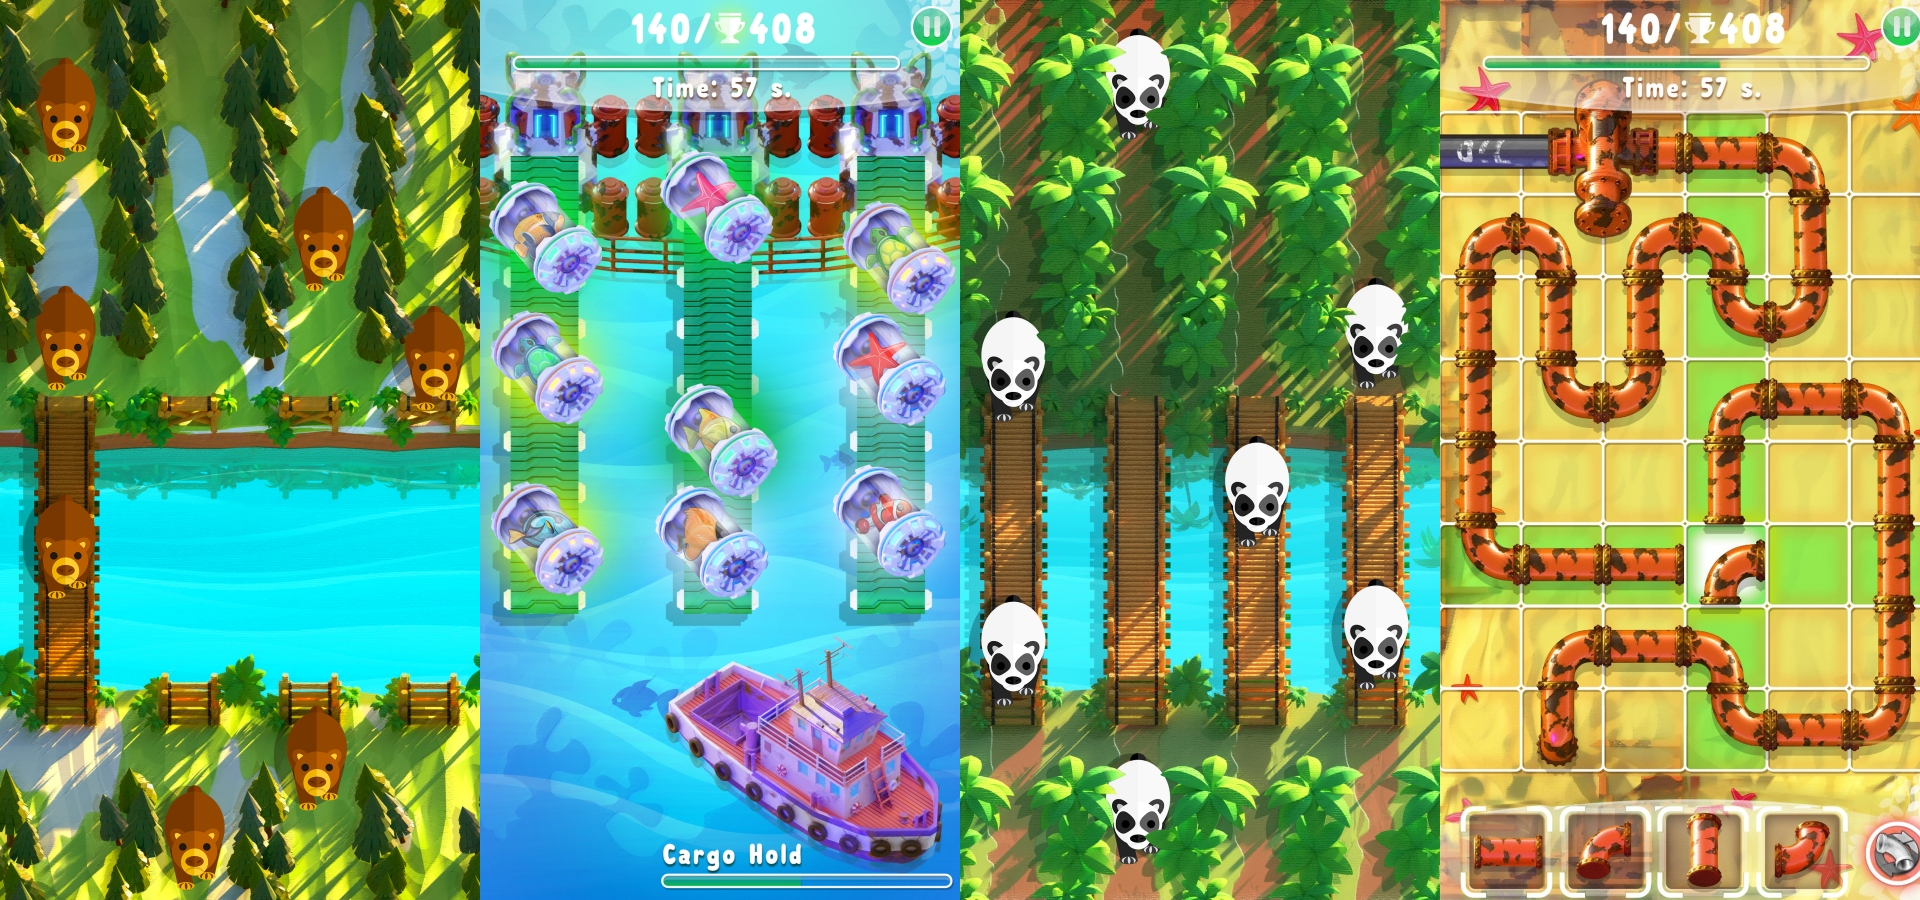 Eco-aire new gameplay images